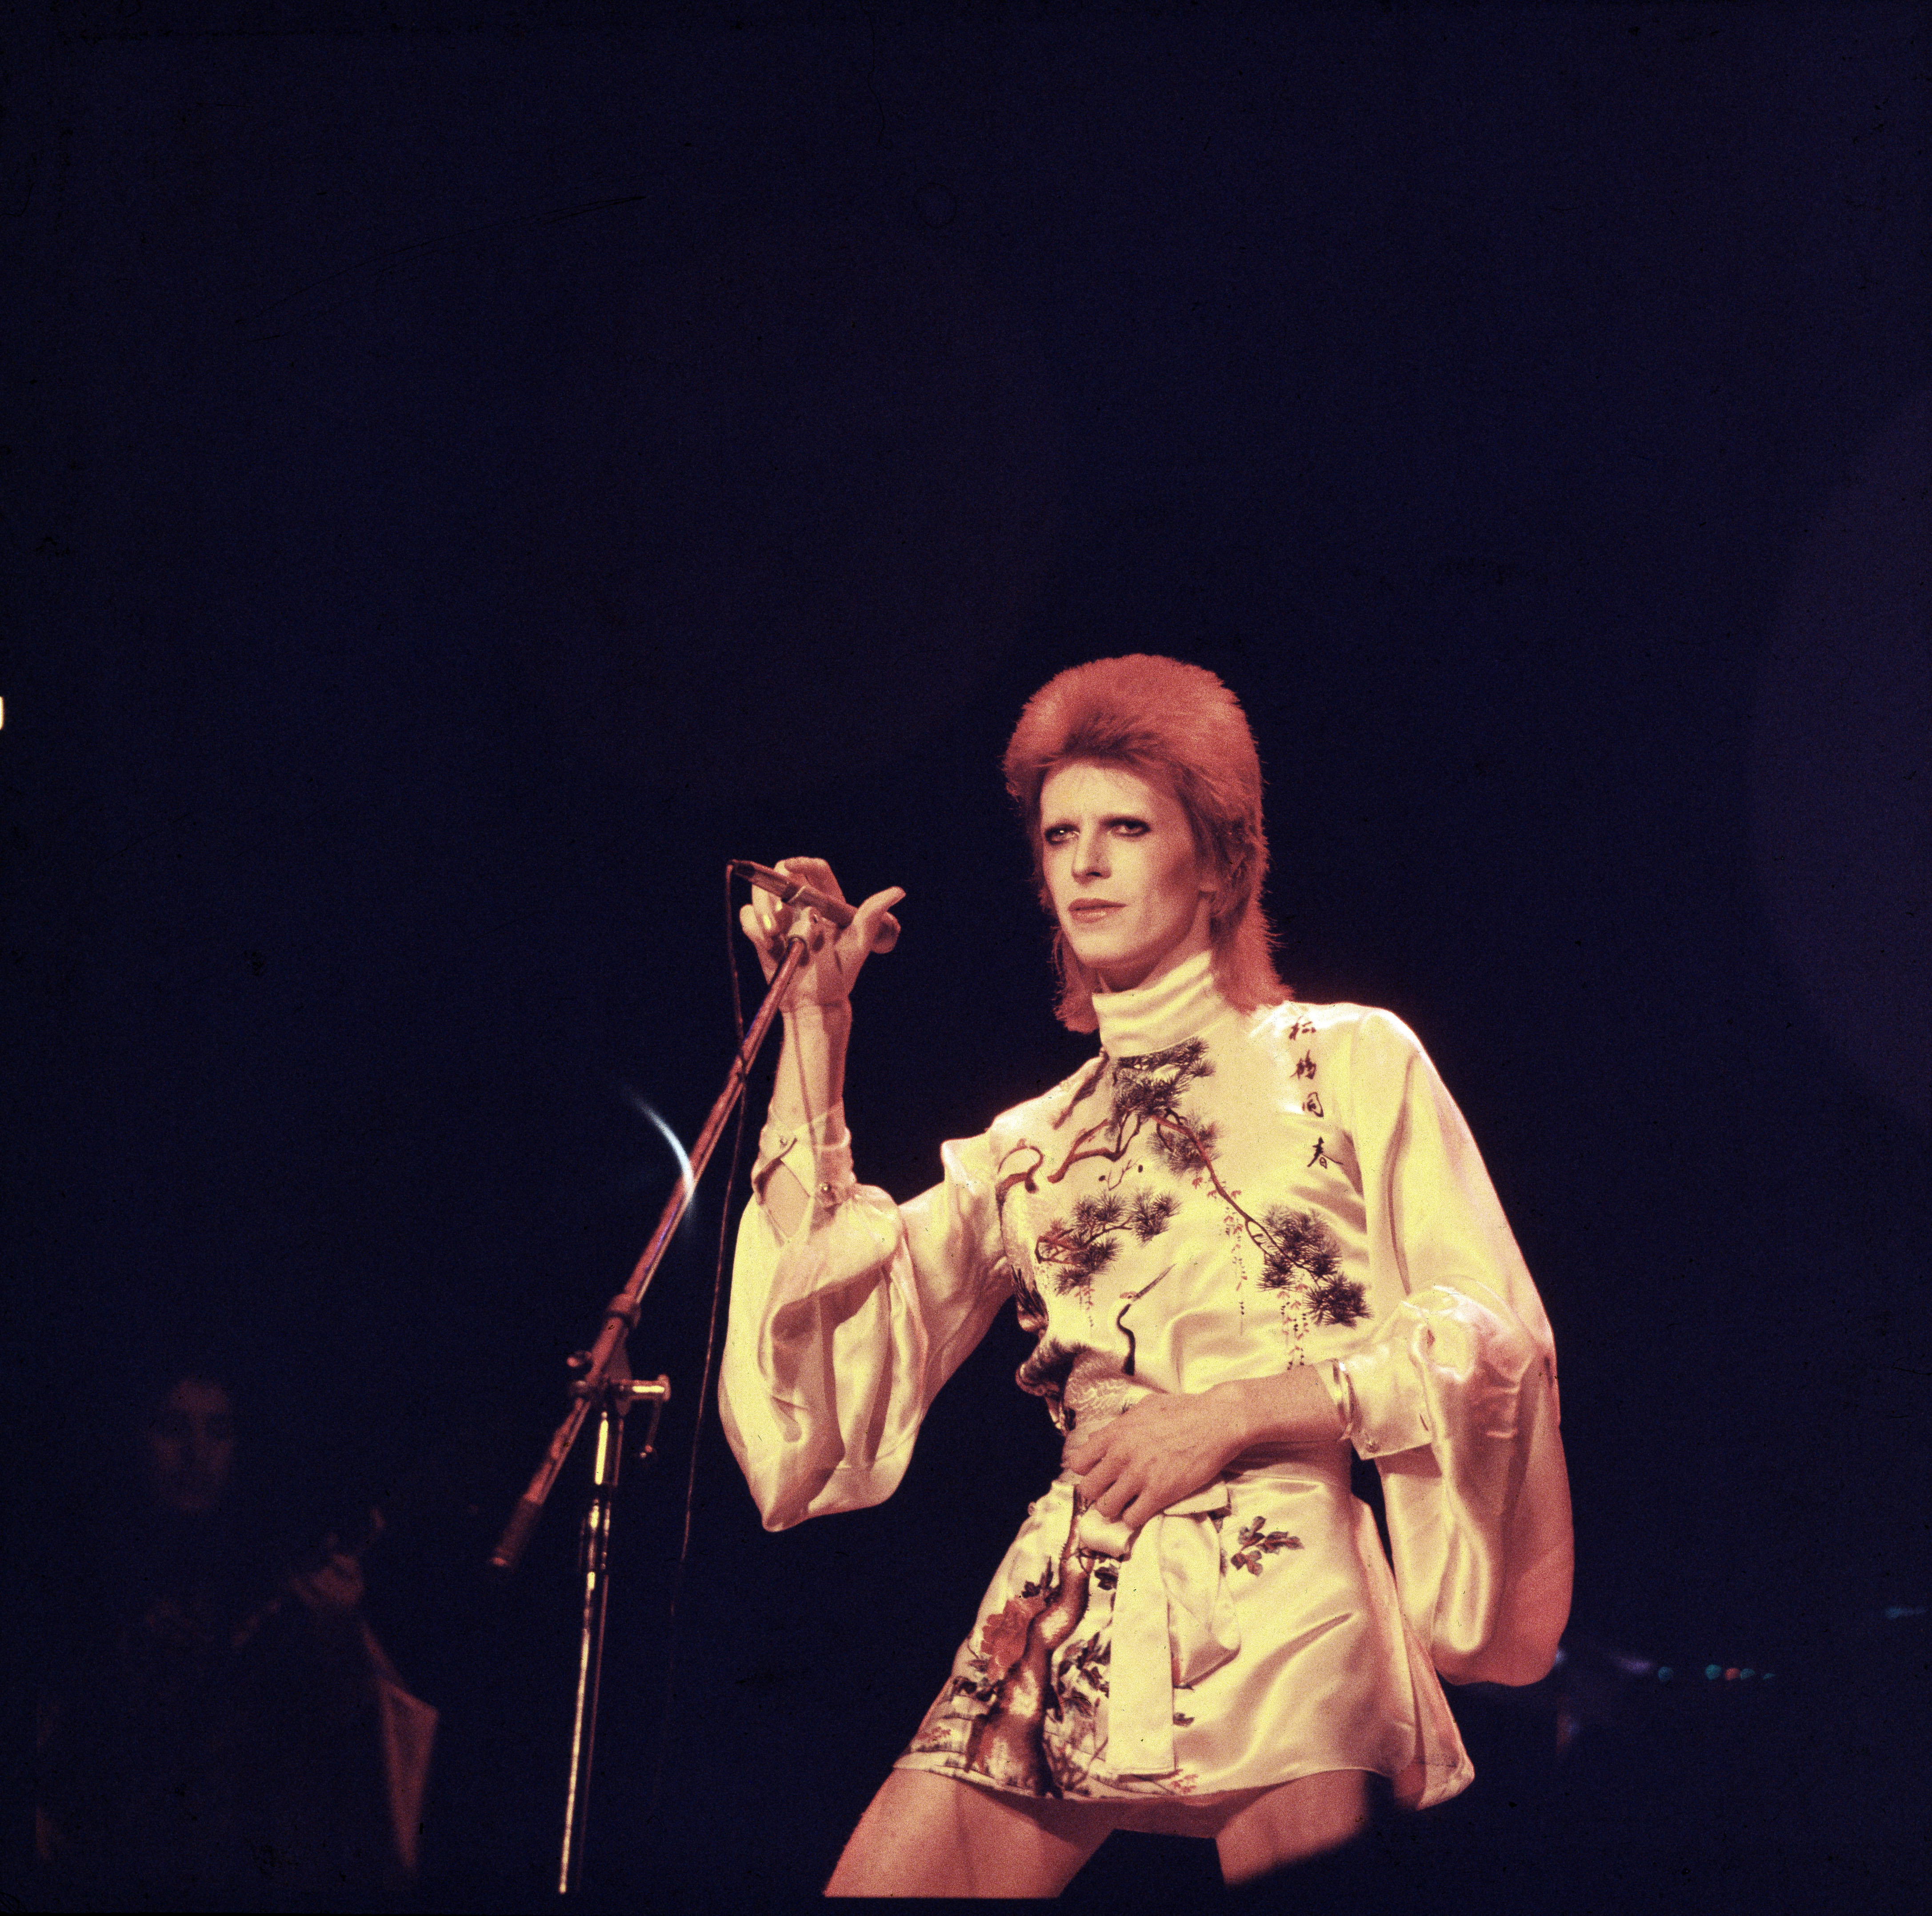 David Bowie-Inspired Emoji to Appear in New iPhone Update